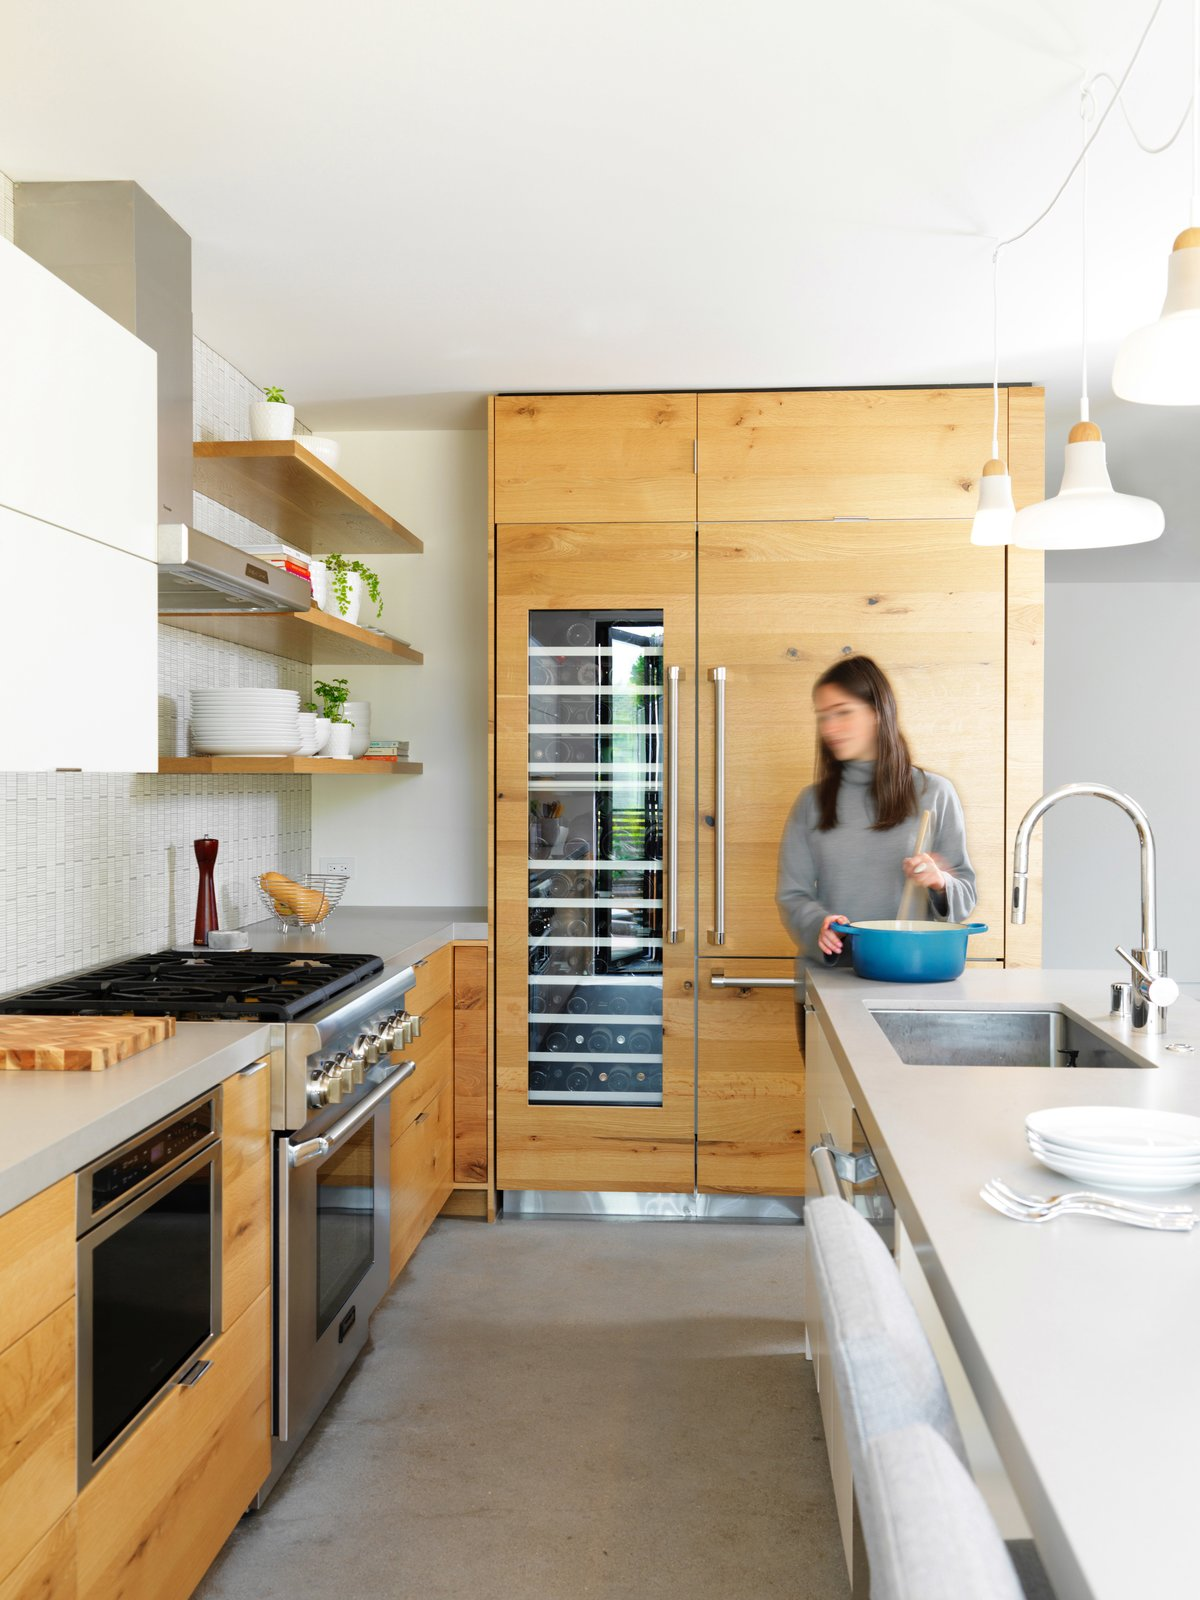 Top 5 Kitchens of the Week With Warm Wood Details